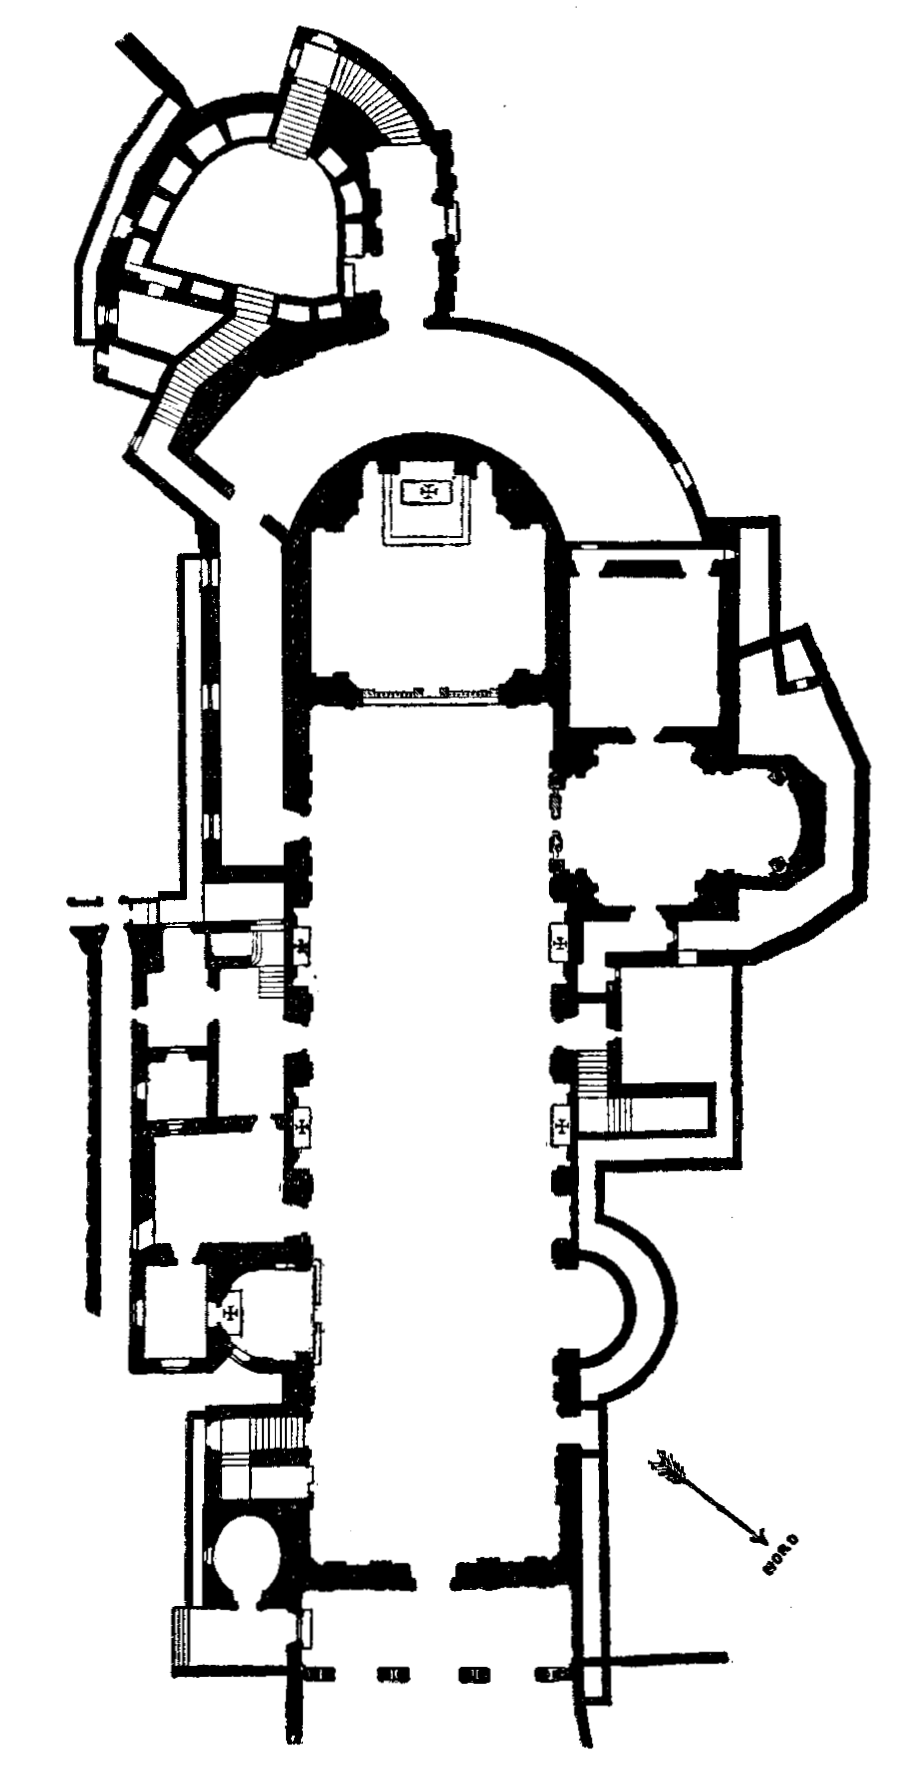 san sebastiano fuori le mura churches of rome wiki fandom 1920 Arcade Games the present edifice utilizes the plan of the original palaeo christian basilica in a cut down form but this is not obvious from the interior and much of